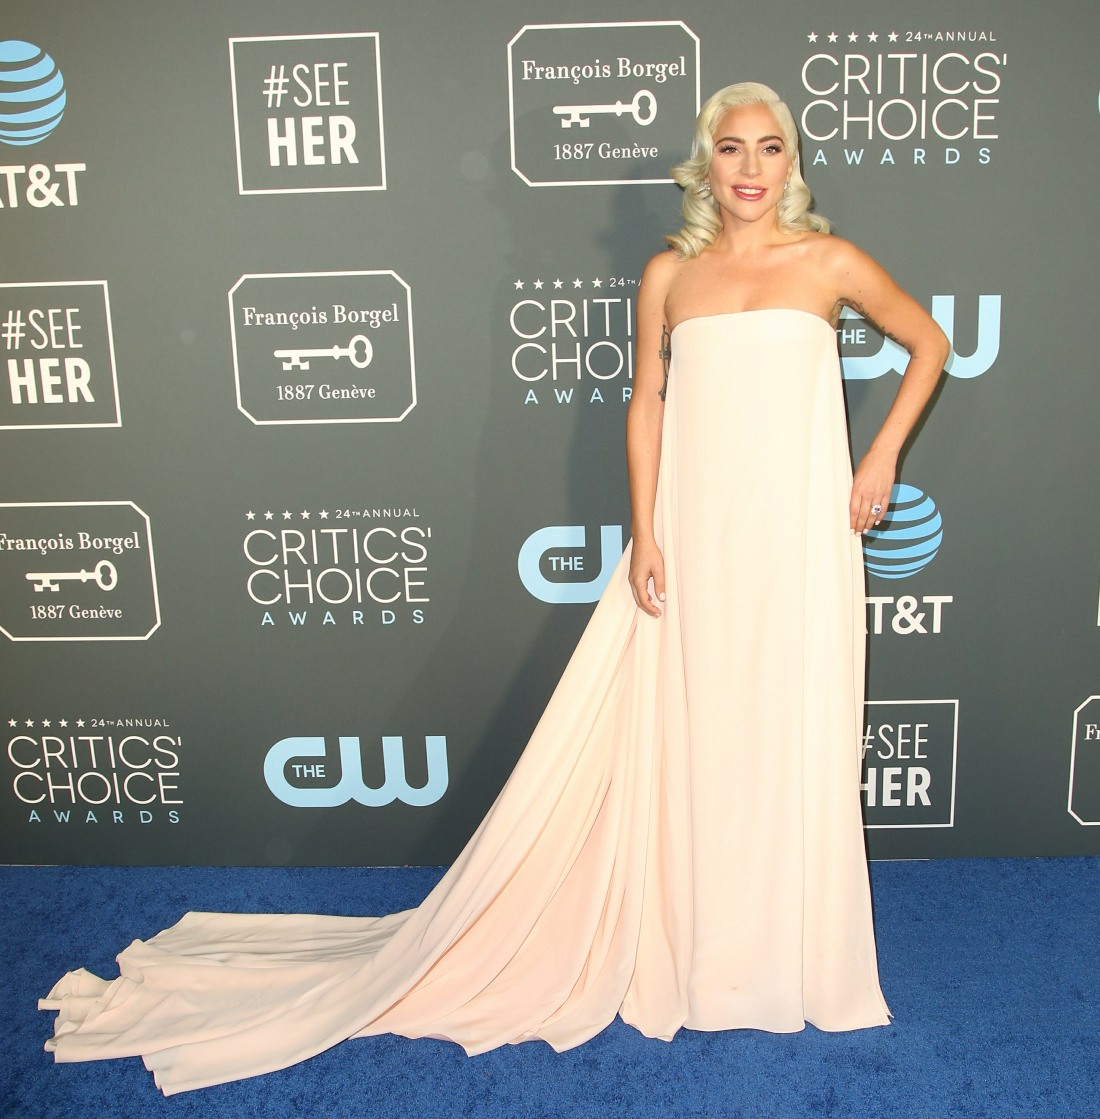 Lady Gaga in Calvin Klein at the Critics' Choice Awards: stunning & improved?